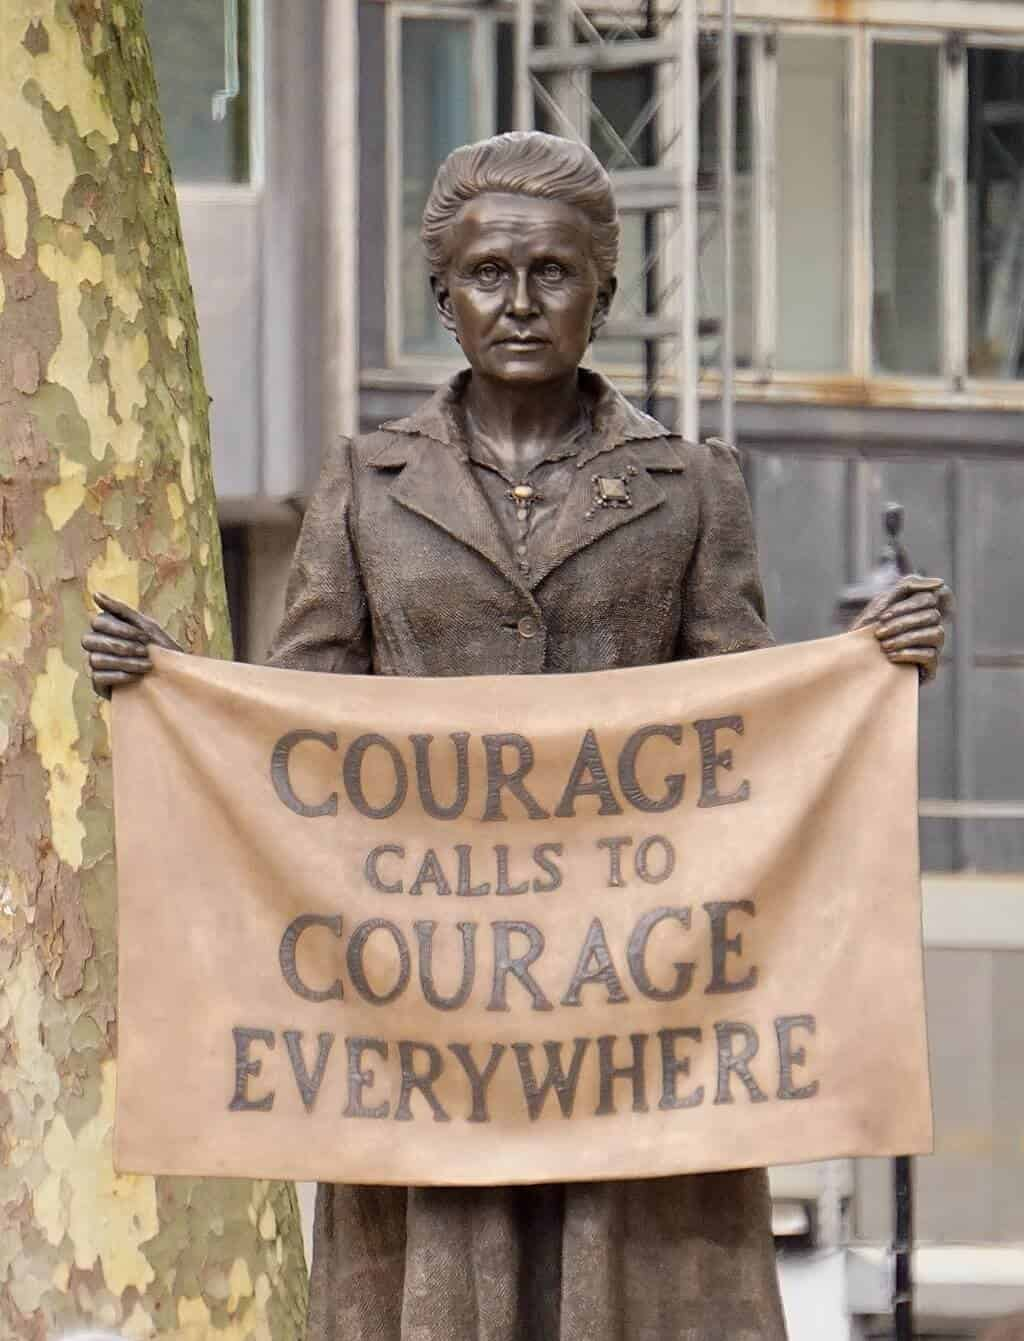 """The statue - unveiled at last"", Millicent Fawcett statue unveiled, 2018. Photographer: Garry Knight. Courtesy of Wikimedia Commons."